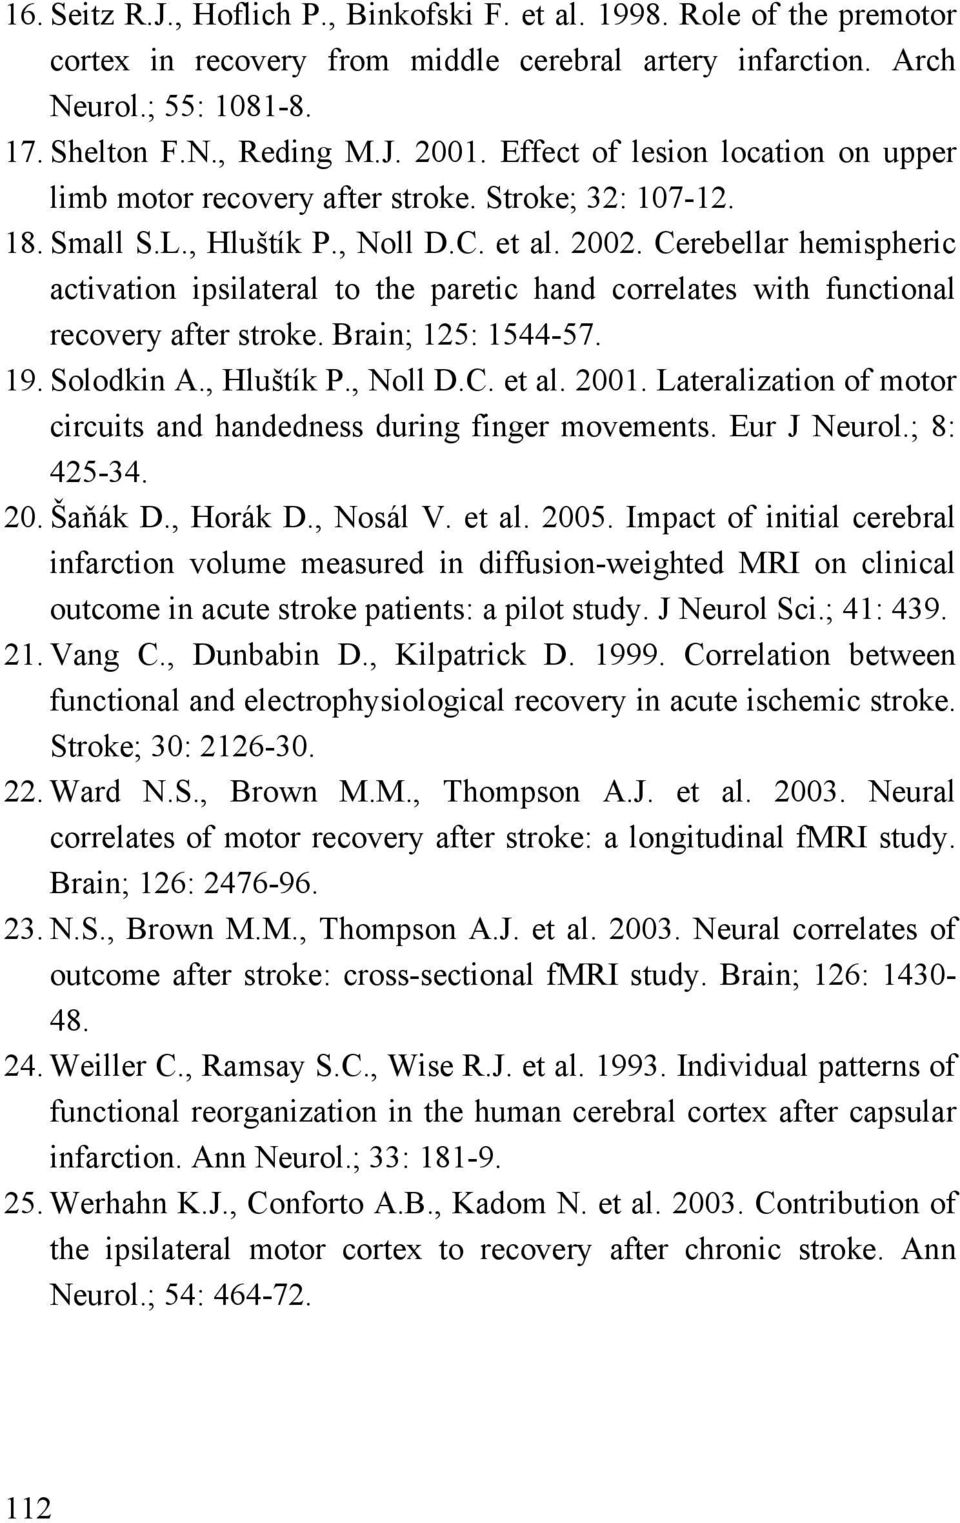 Cerebellar hemispheric activation ipsilateral to the paretic hand correlates with functional recovery after stroke. Brain; 125: 1544-57. 19. Solodkin A., Hluštík P., Noll D.C. et al. 2001.